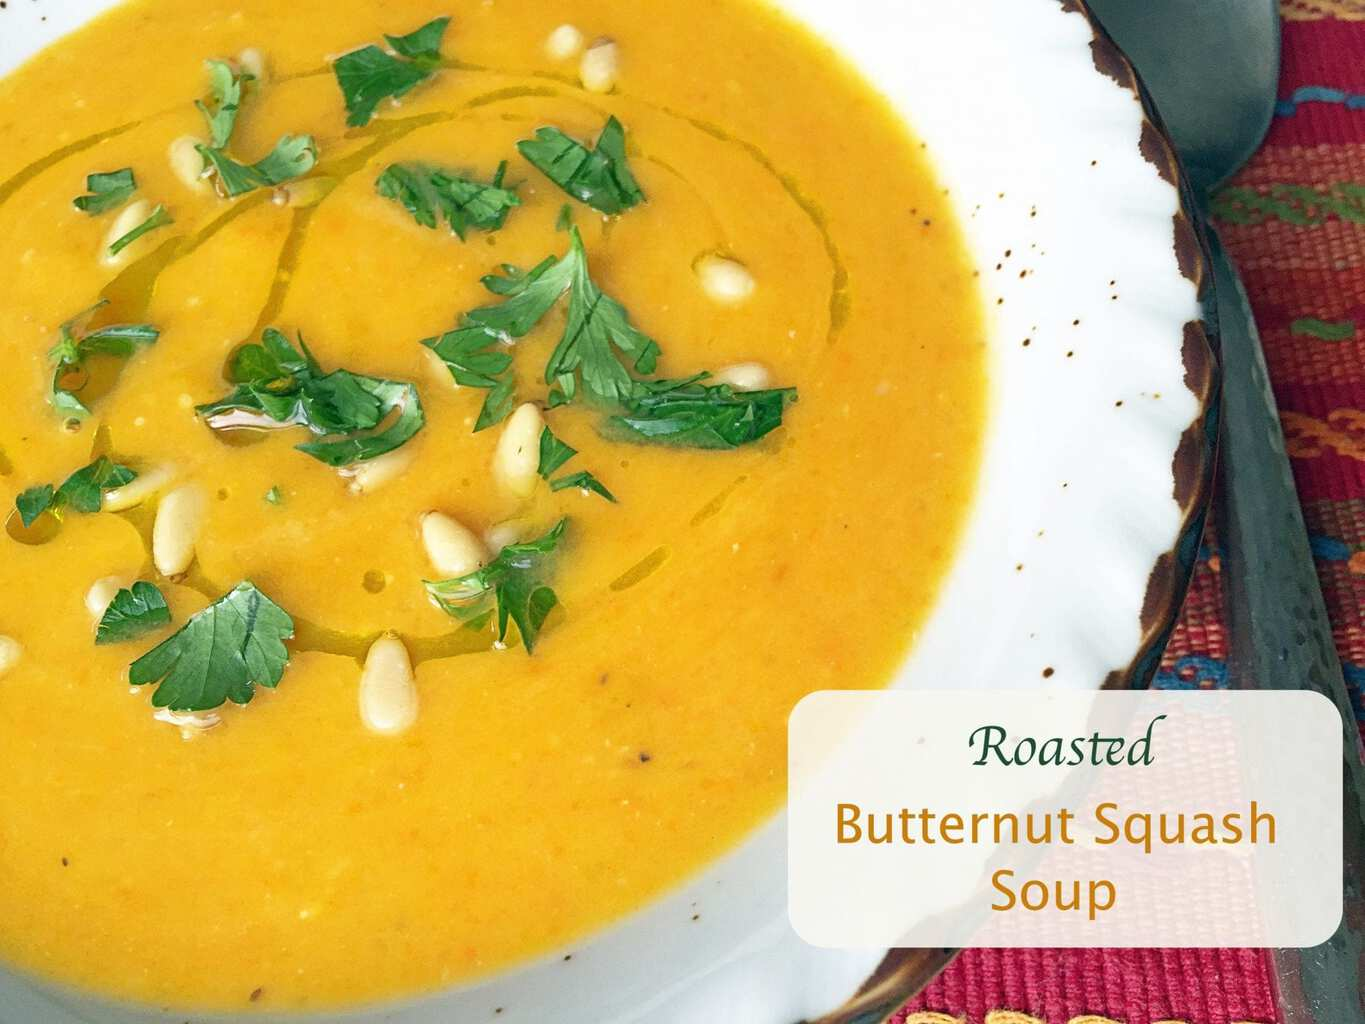 Healthy, flavorful, creamy and incredibly delicious roasted butternut squash soup.